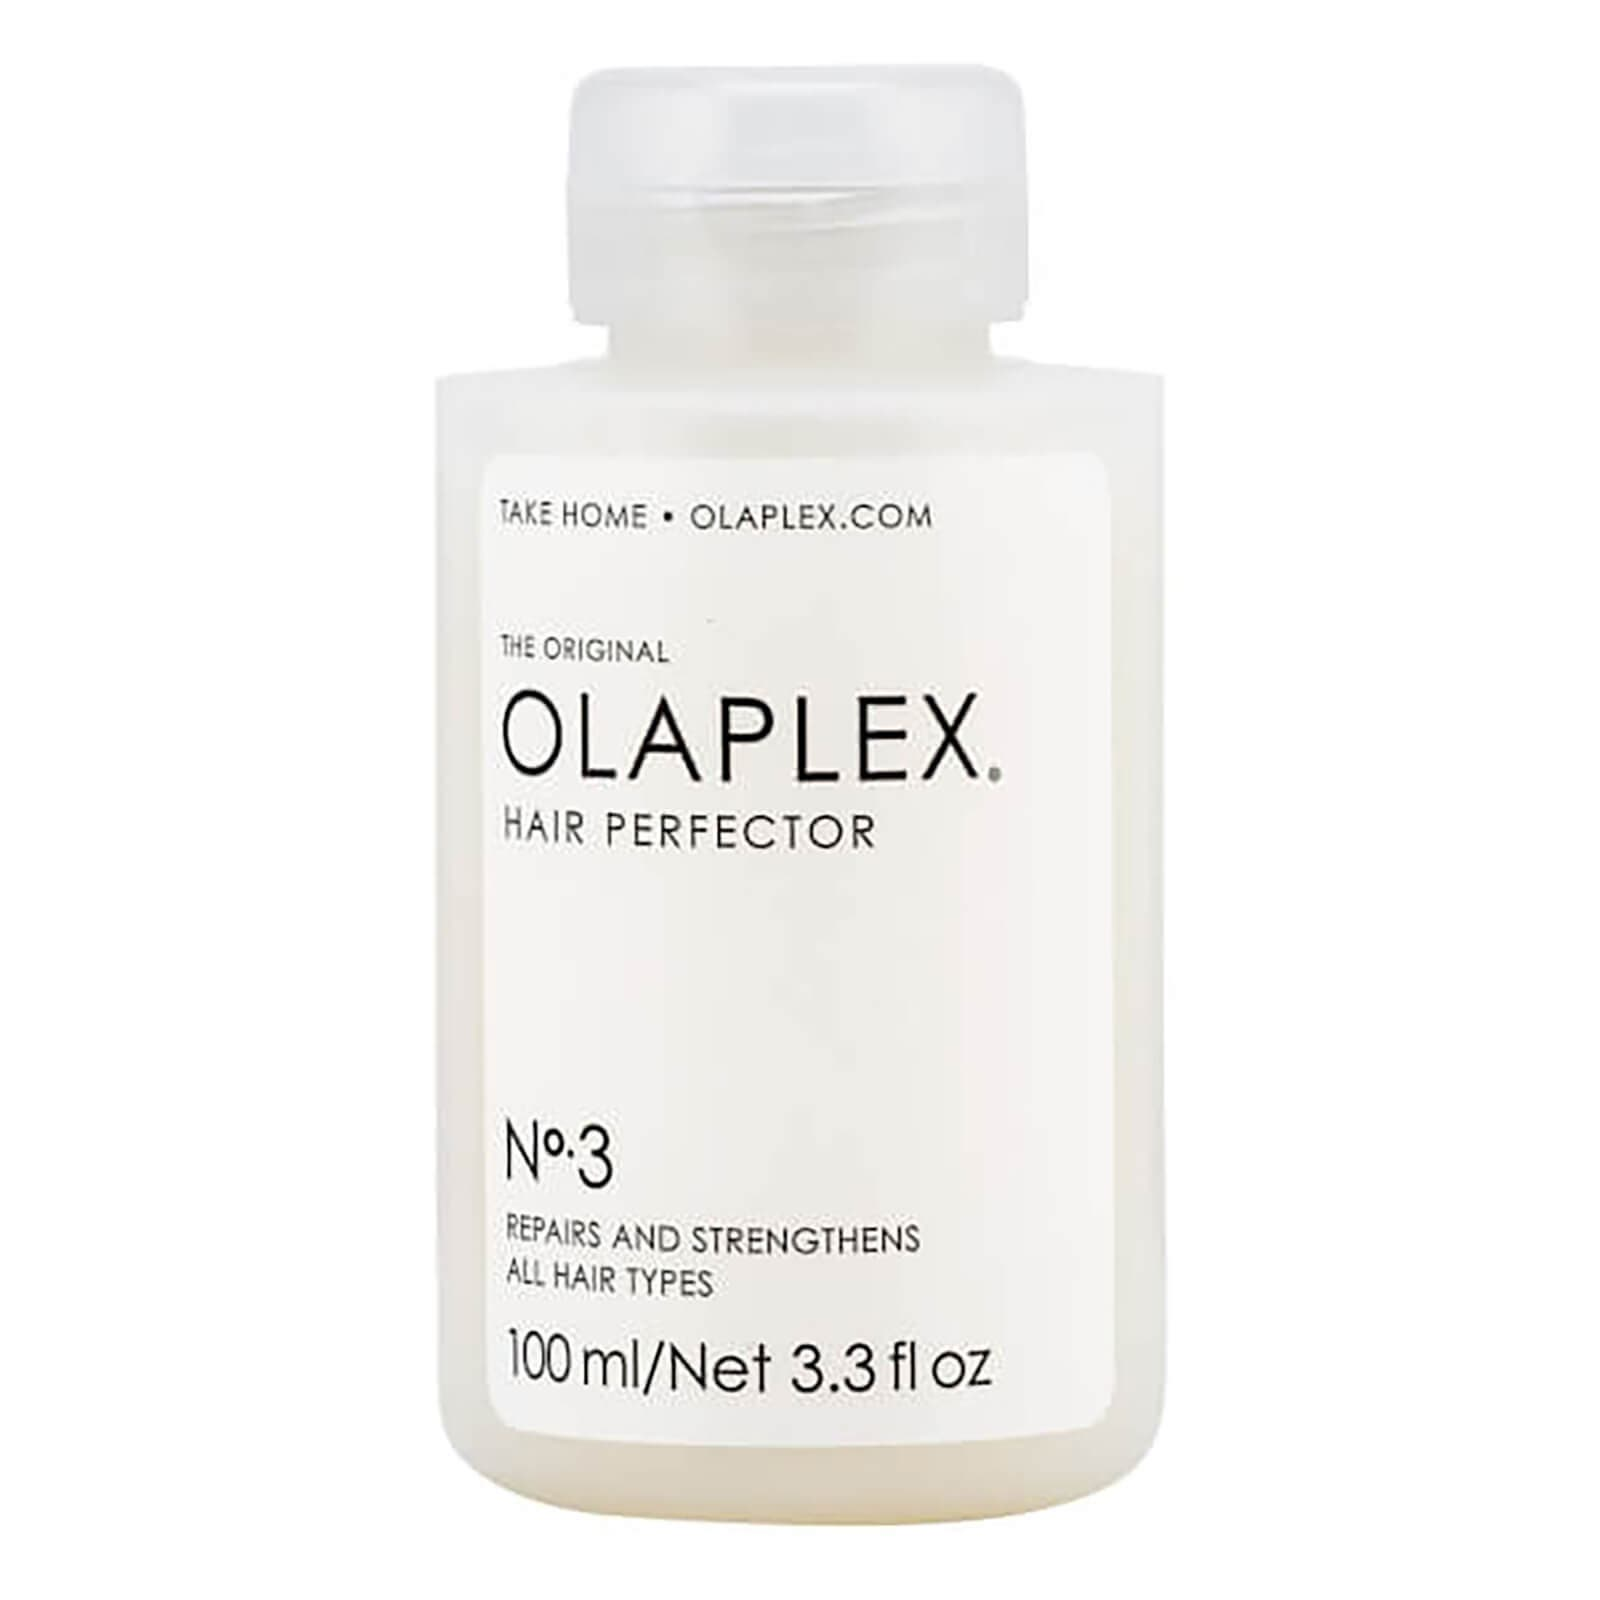 Olaplex Hair Perfector No 3 Hair Treatment Repairs 100ml